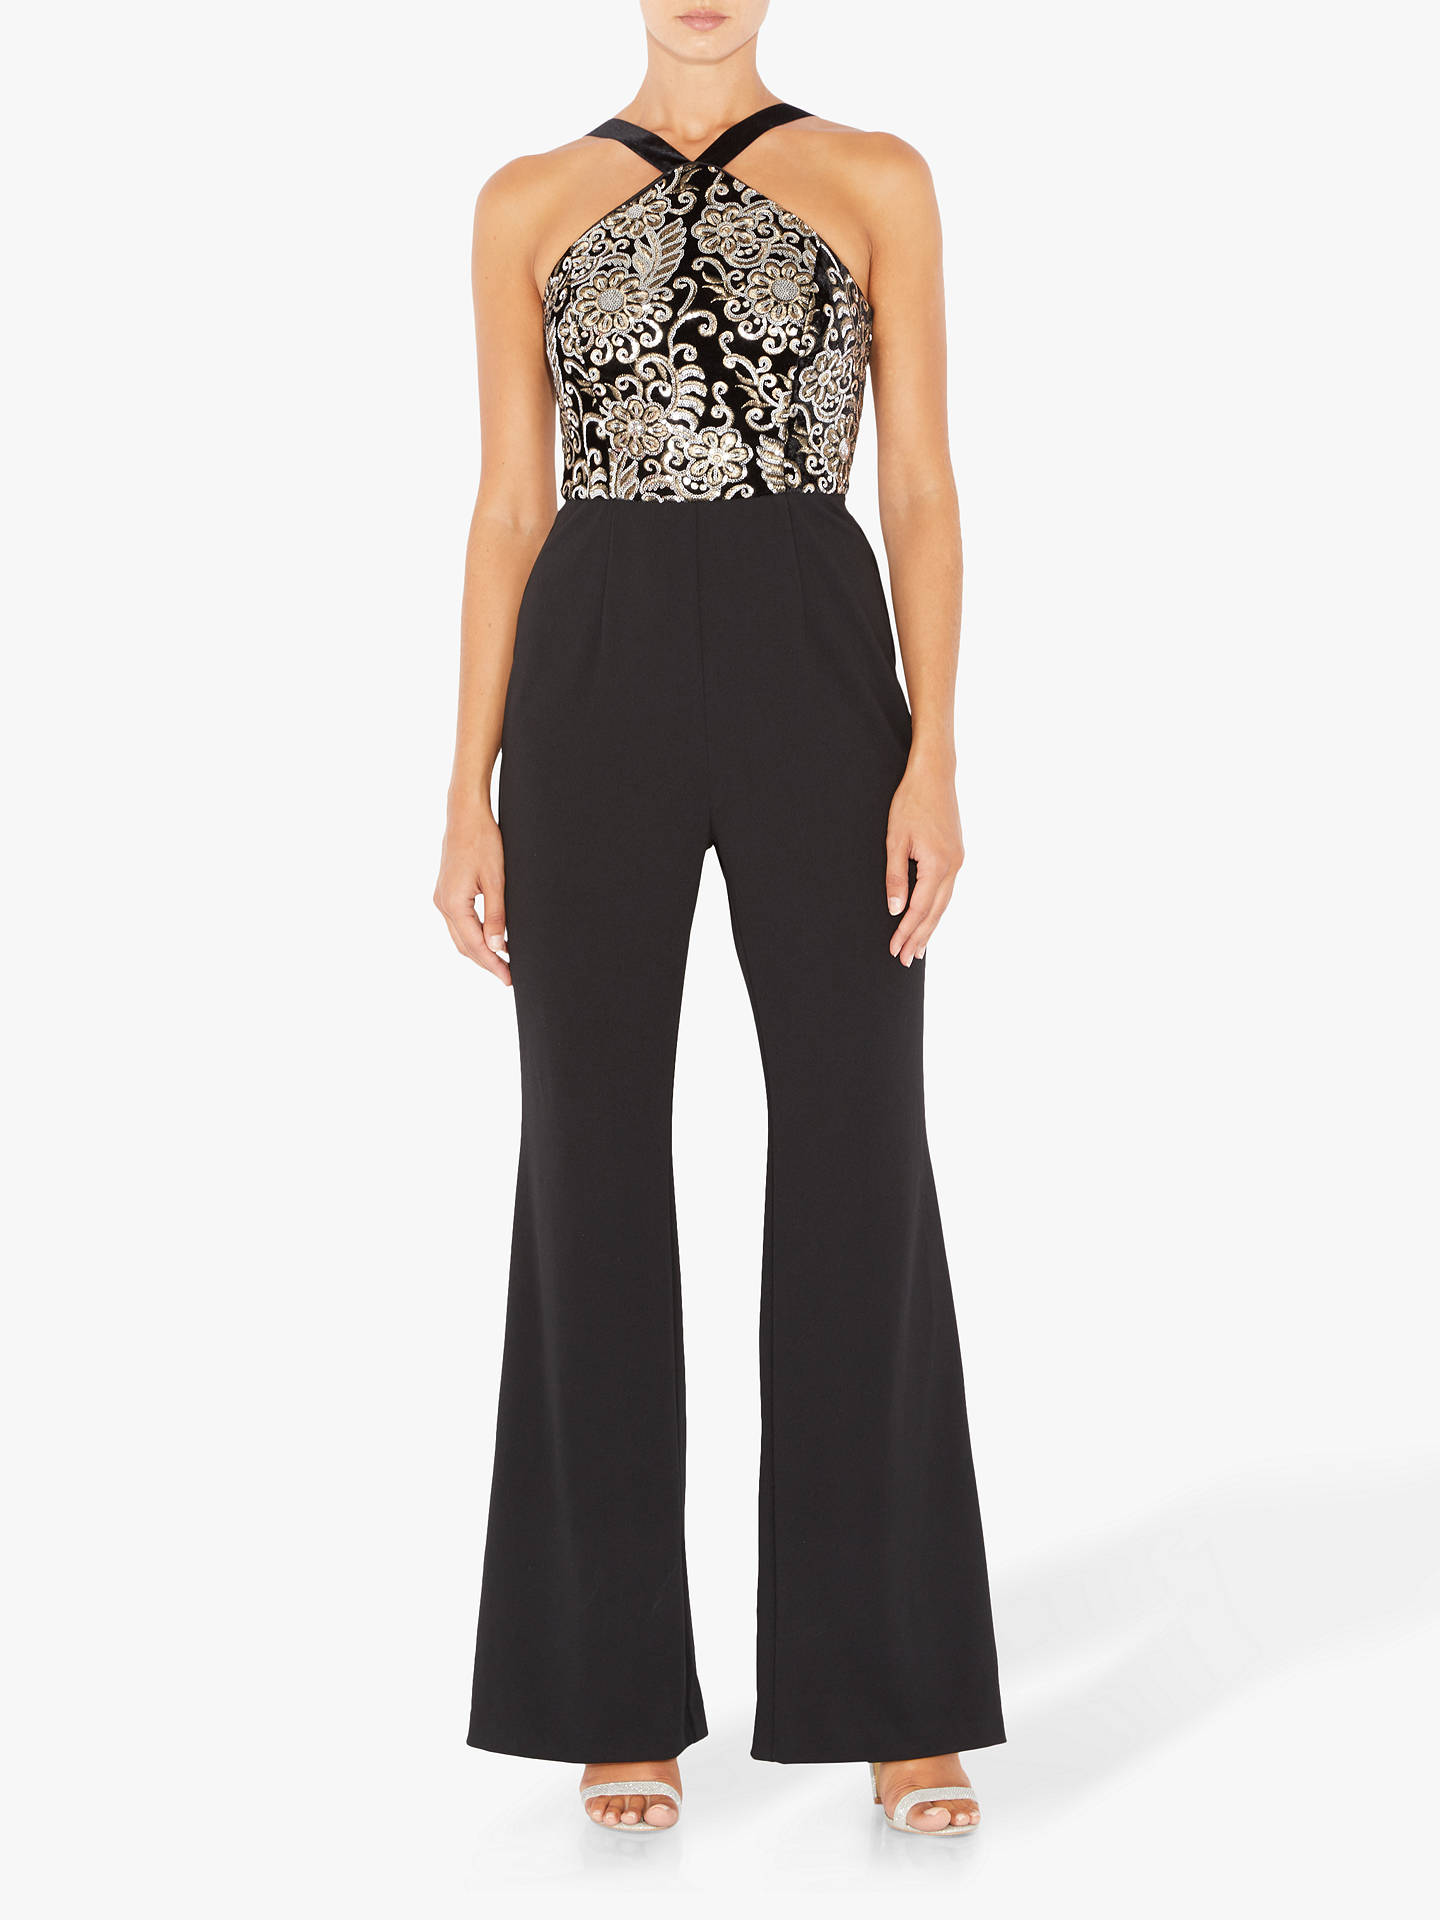 BuyAdrianna Papell Embroidered Knit Crepe Jumpsuit, Multi, 6 Online at johnlewis.com